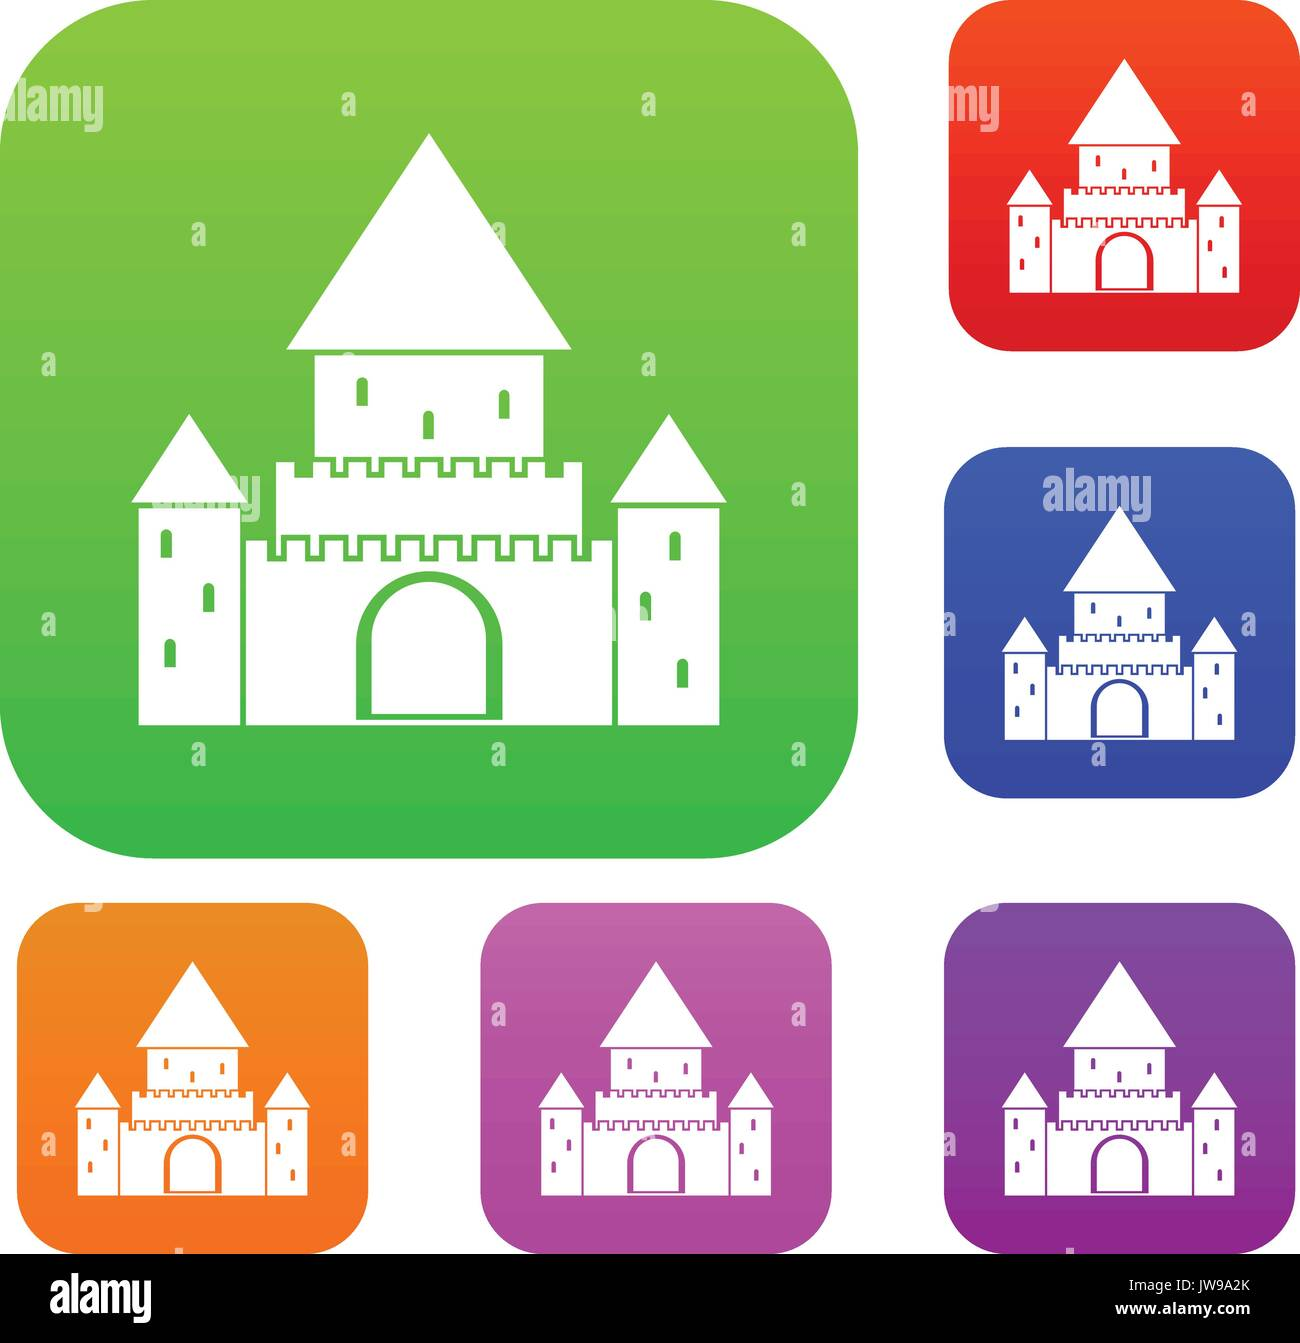 Chillon Castle, Switzerland set collection - Stock Vector